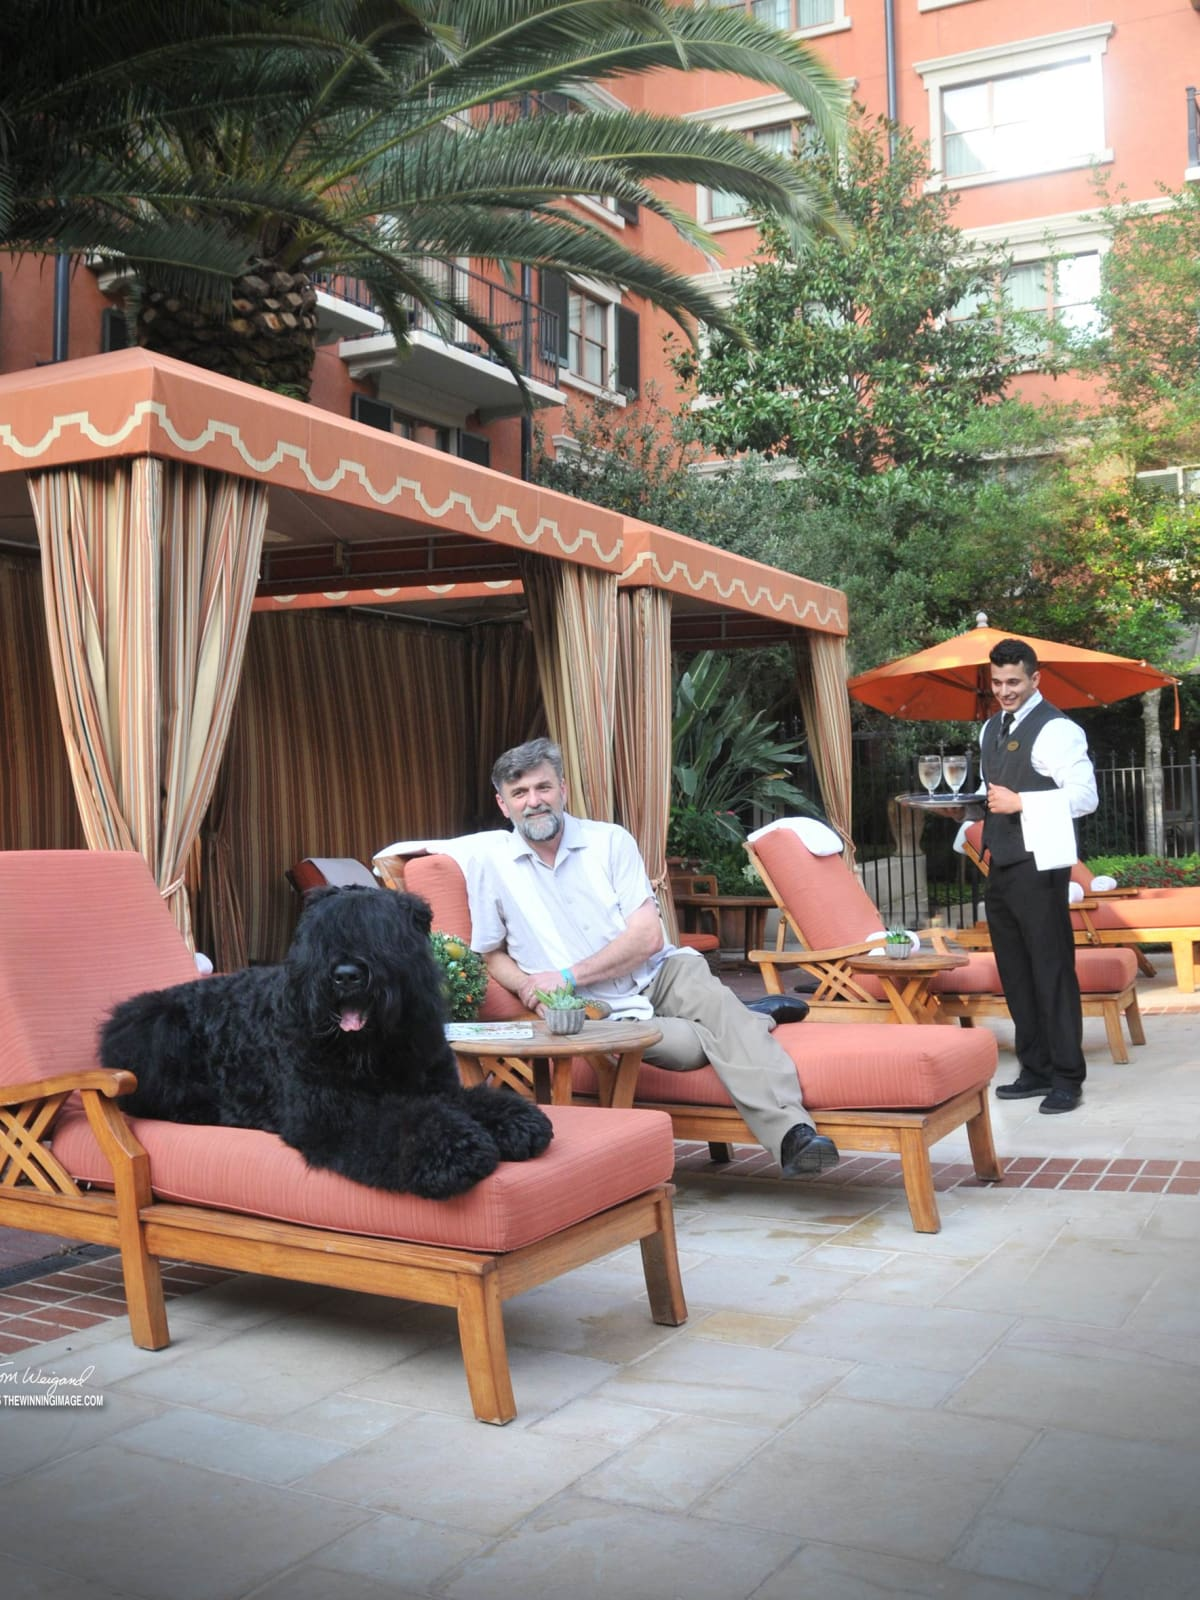 News, Shelby, Pix of the Day, Dog at Hotel Granduca, July 2015